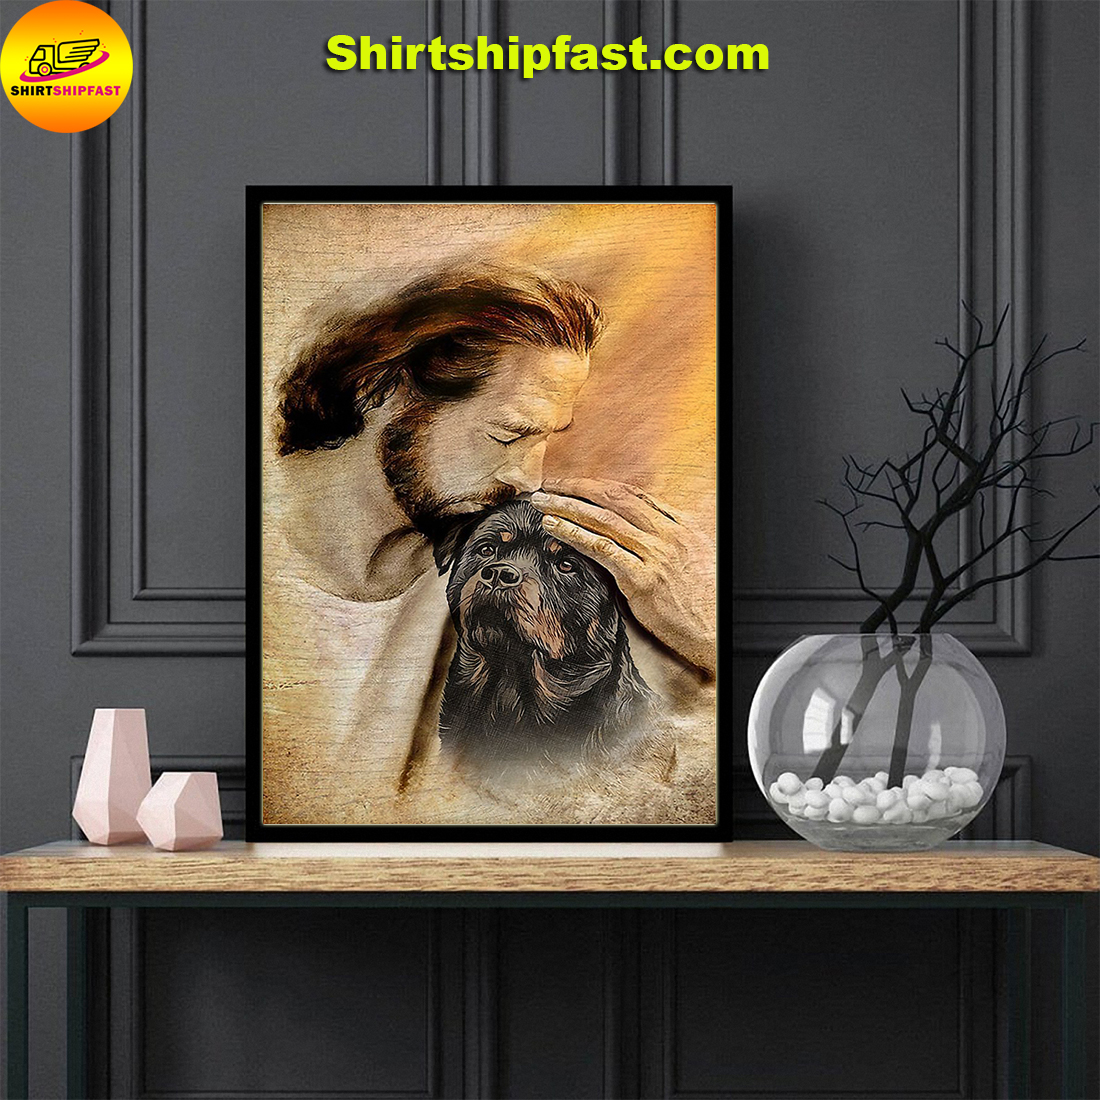 Jesus with lovely Rottweiler for Rottweiler lover poster - Picture 1